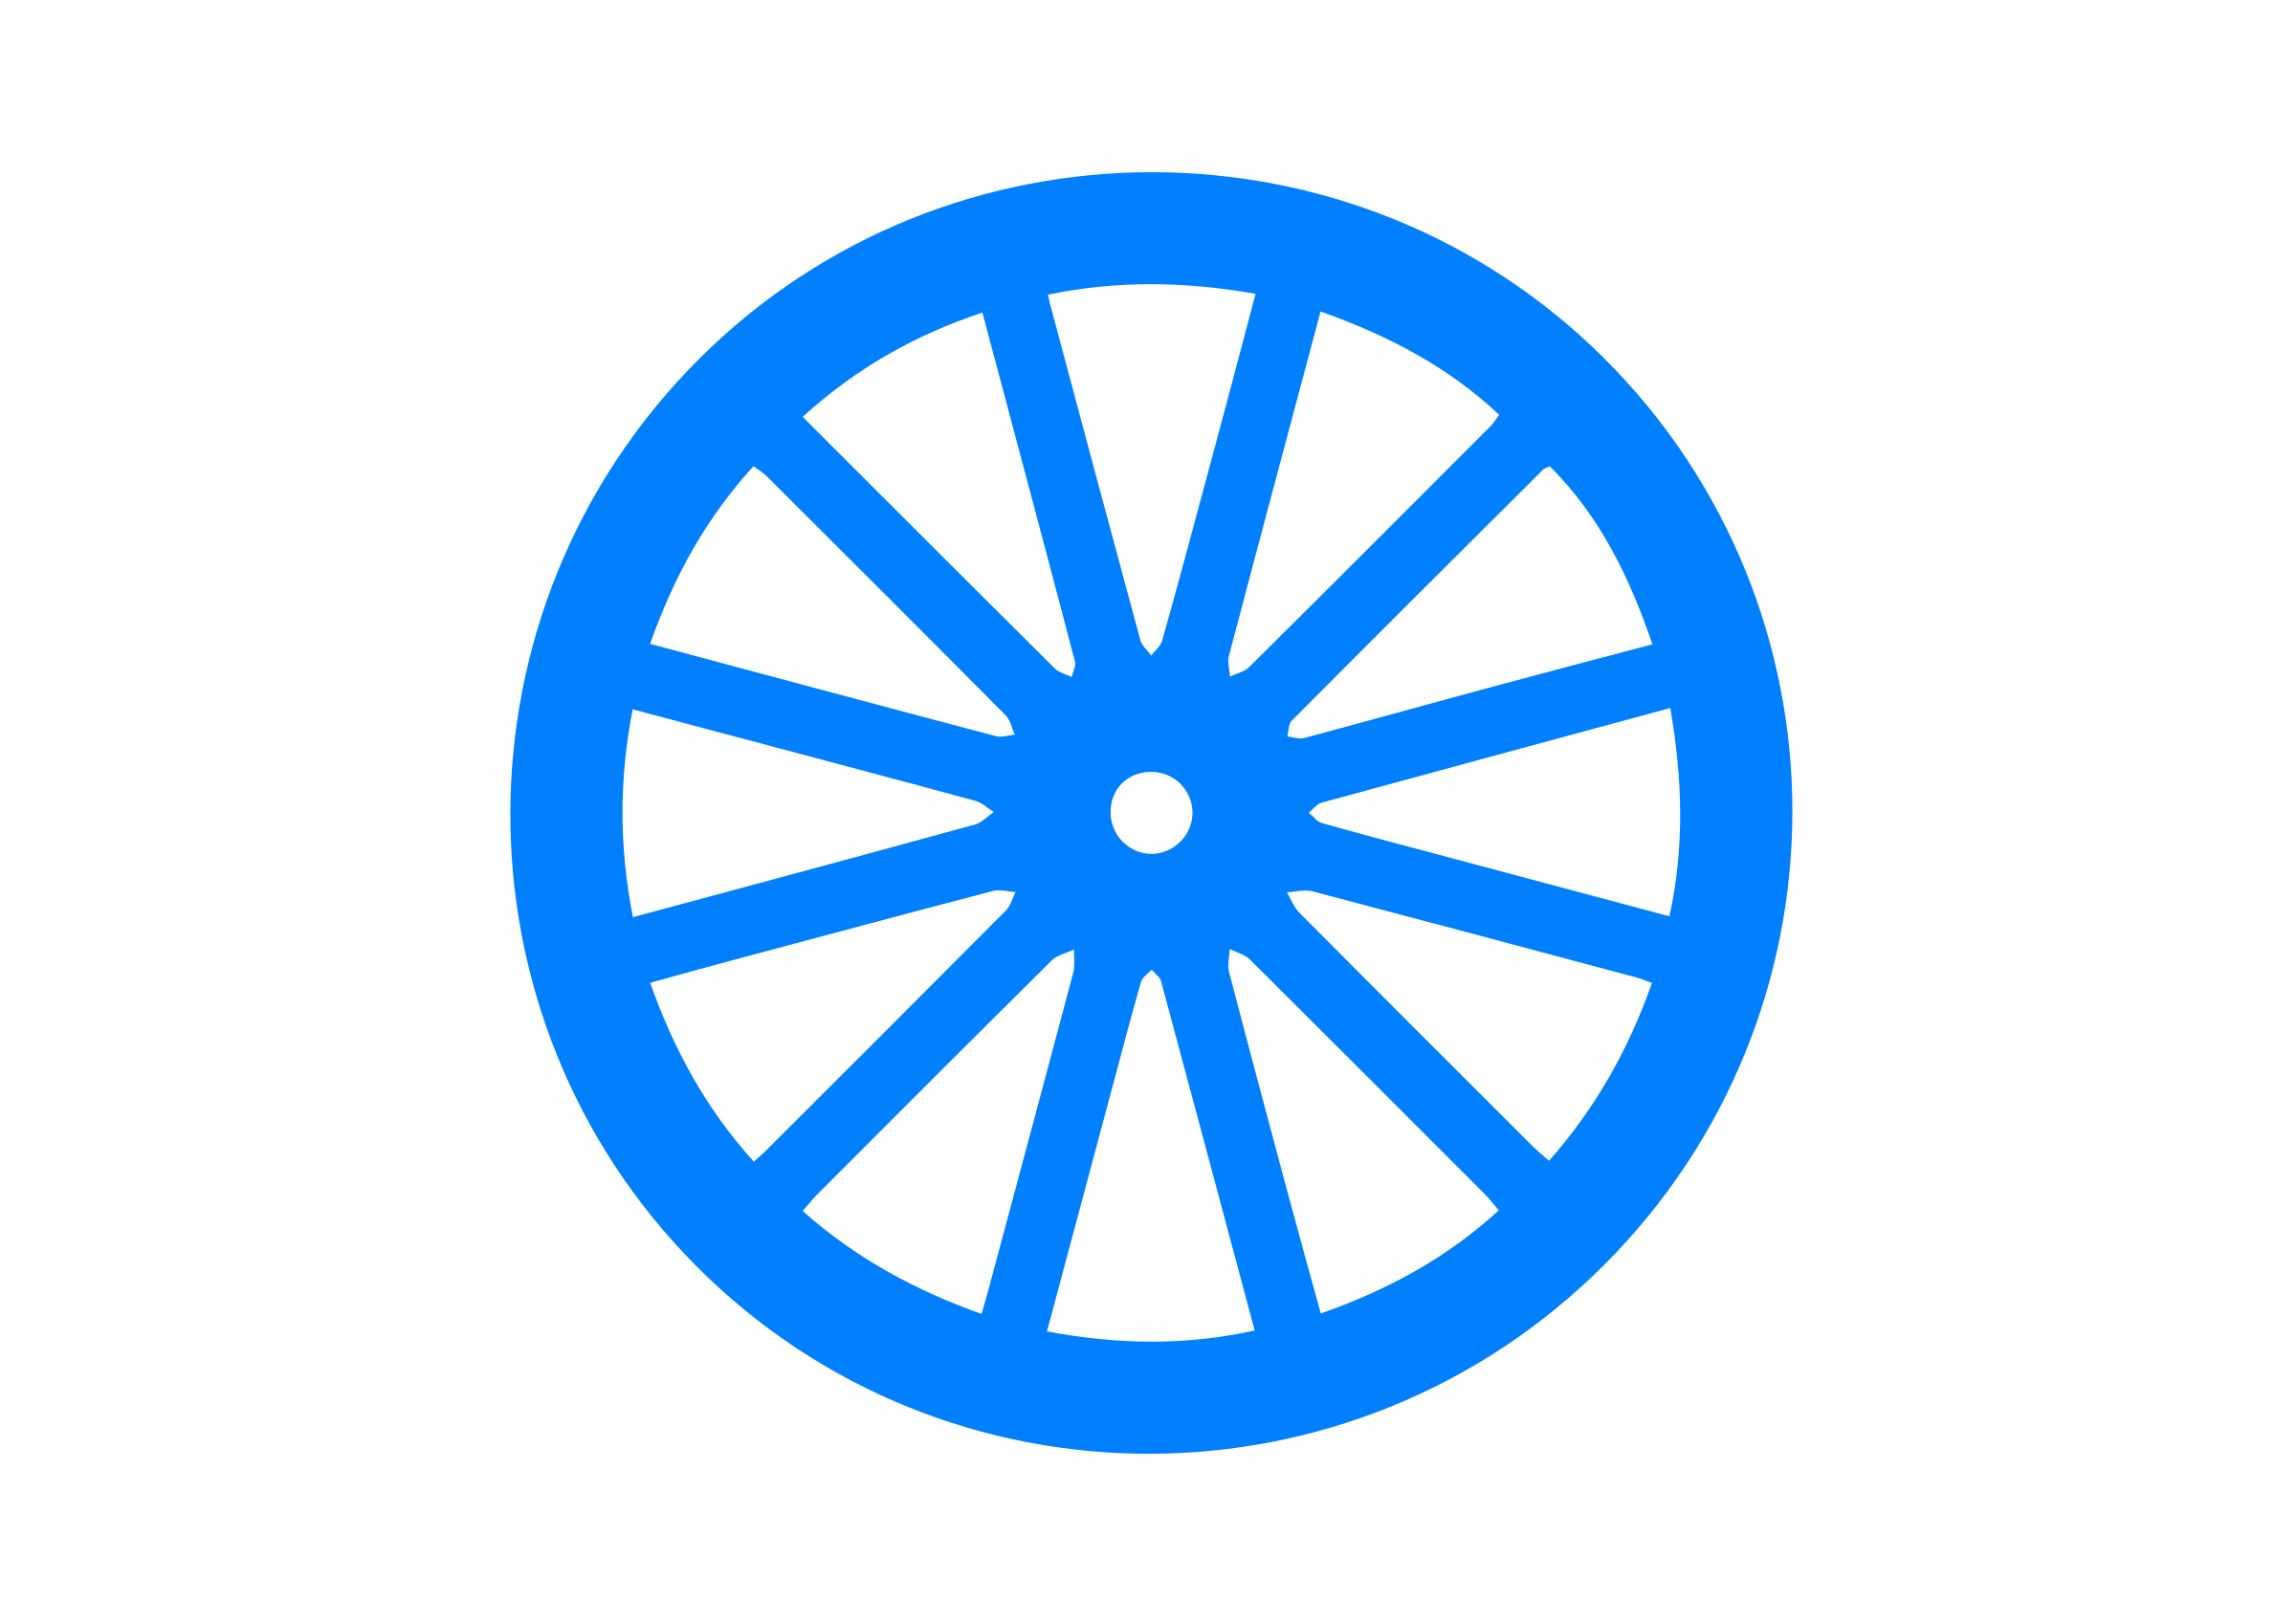 Wheel clipart logo. Blue cart icons png